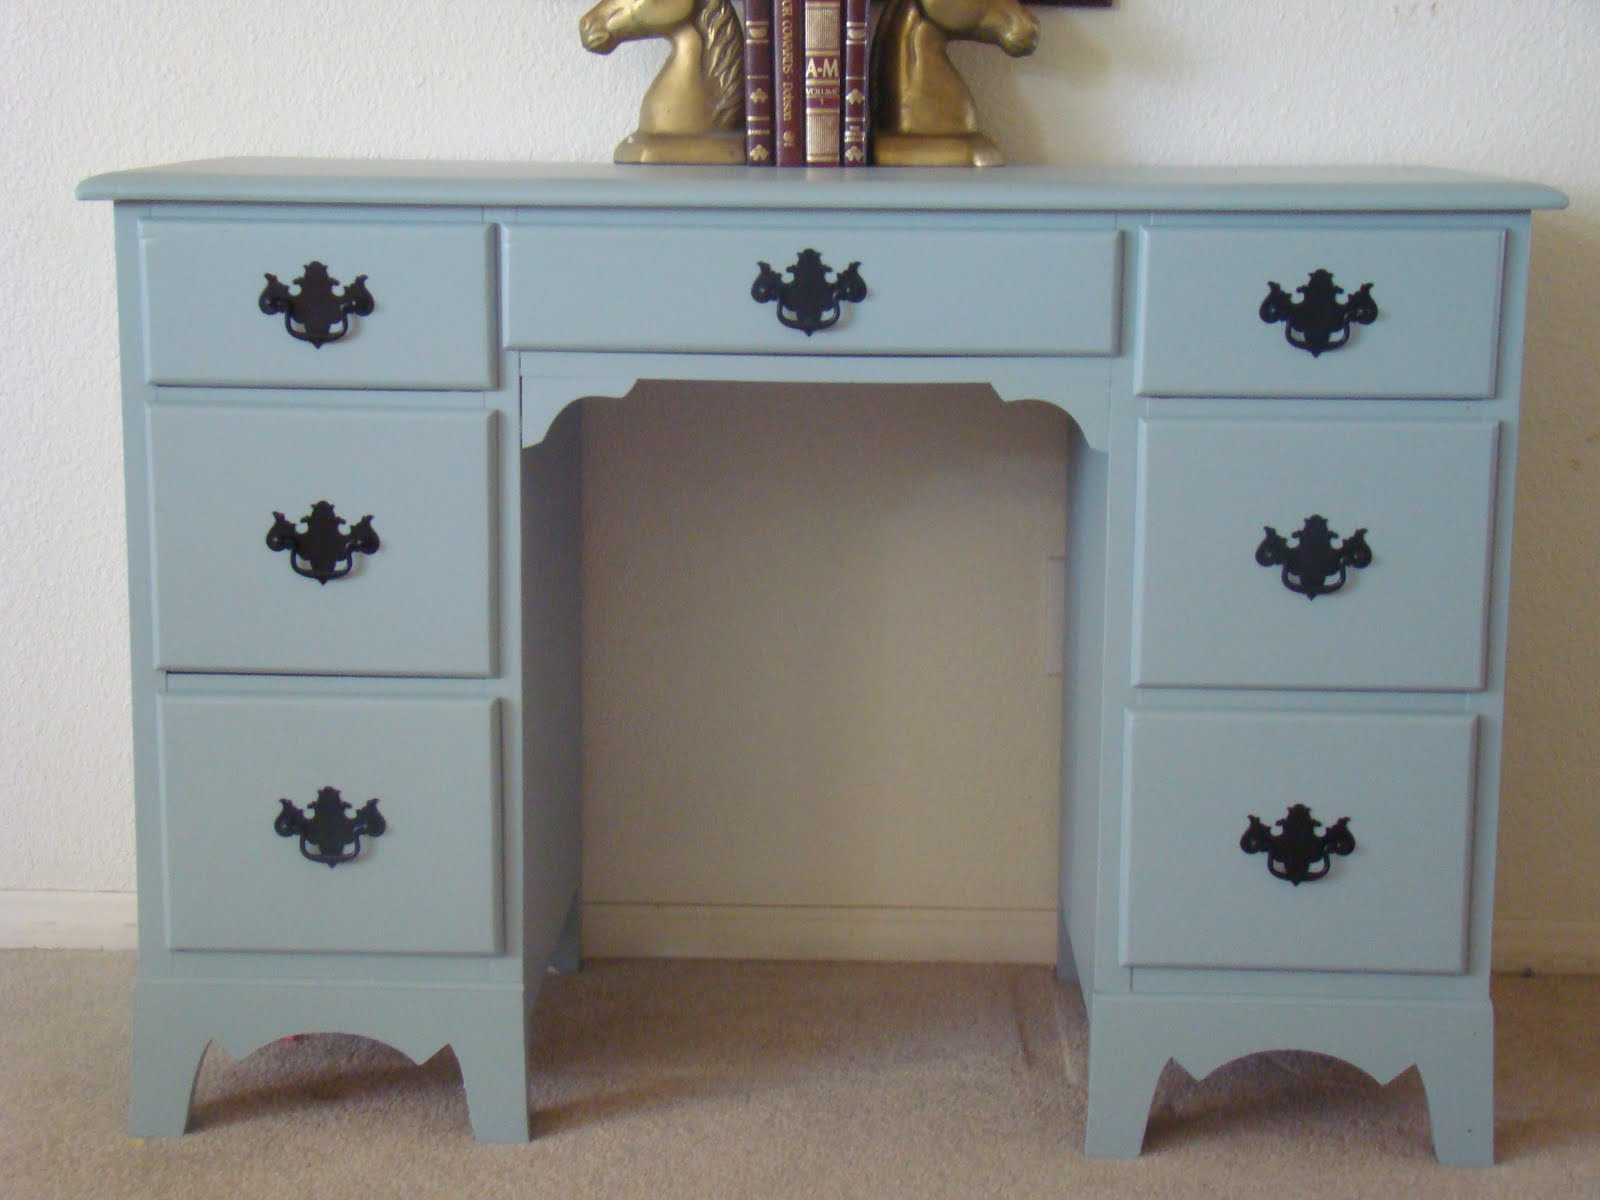 The Amaral Family: New hobbyrefinishing furniture! Shabby Chic